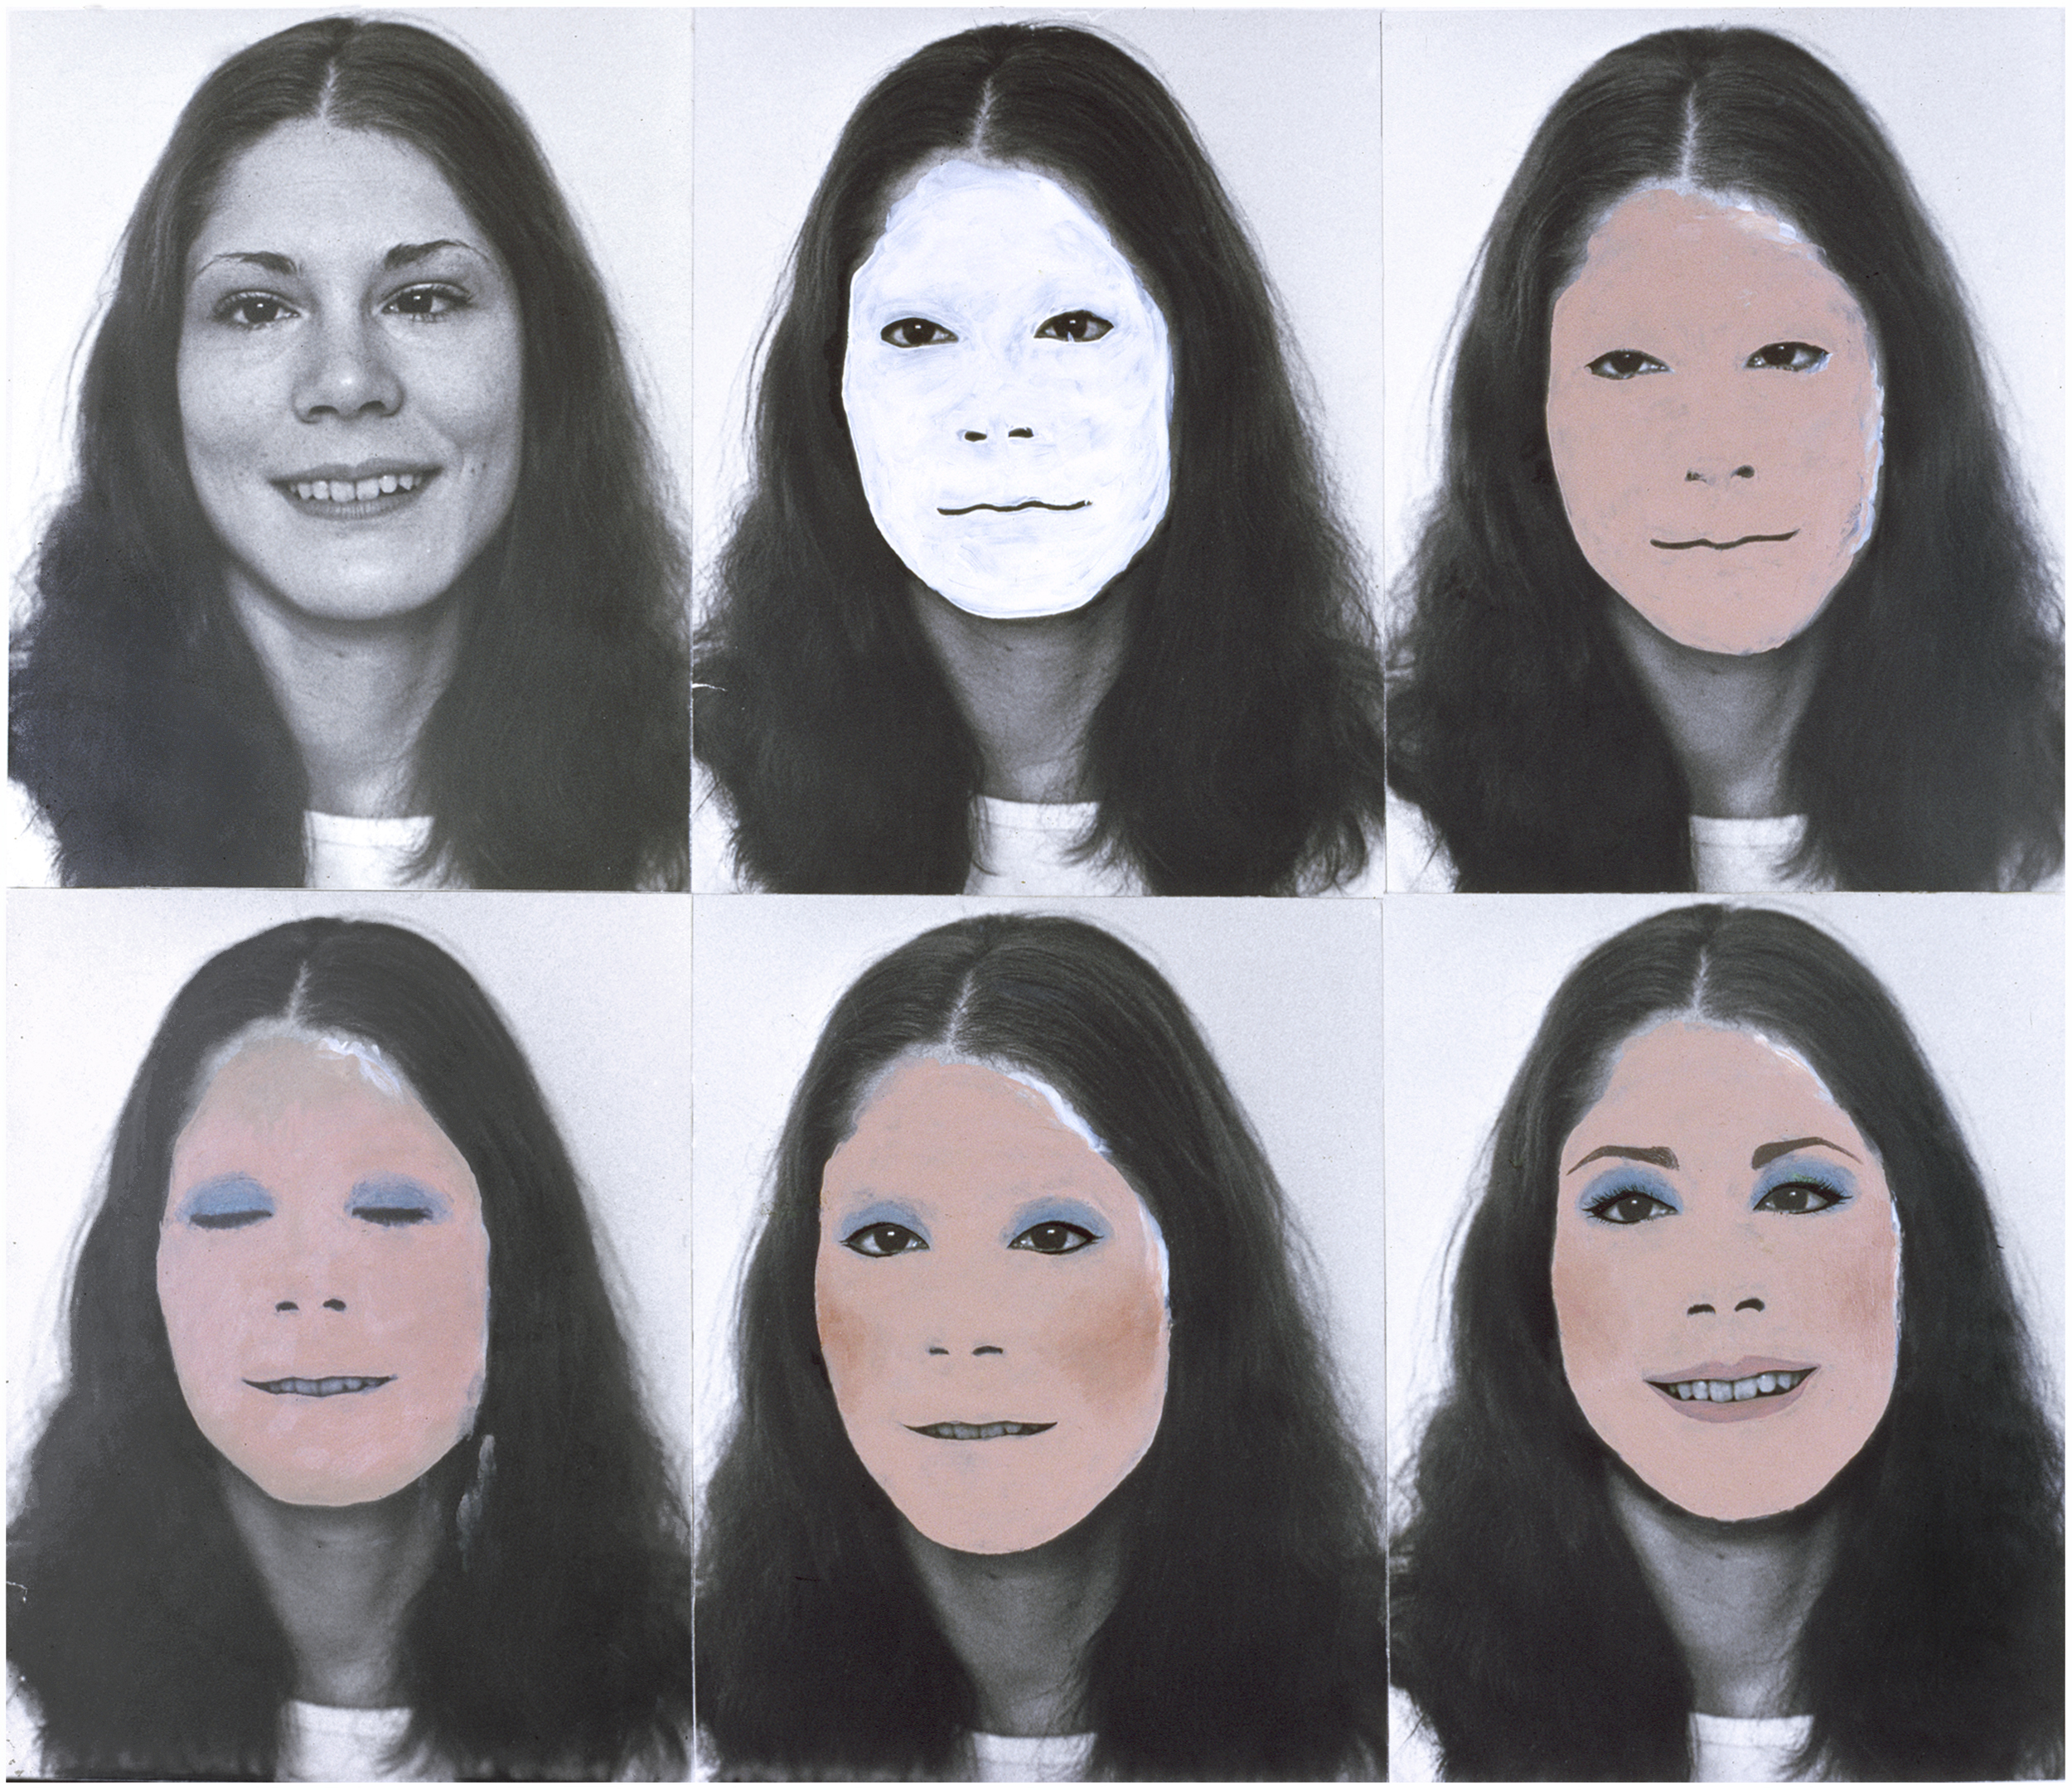 Six black-and-white portraits of a smiling long-haired woman are arranged in two rows. The first one remains untouched, while the others are progressively coloured with makeup: foundation, then eye shadow, blusher, eyebrow pencil and lipstick. The final face, at lower right, is completely made up.